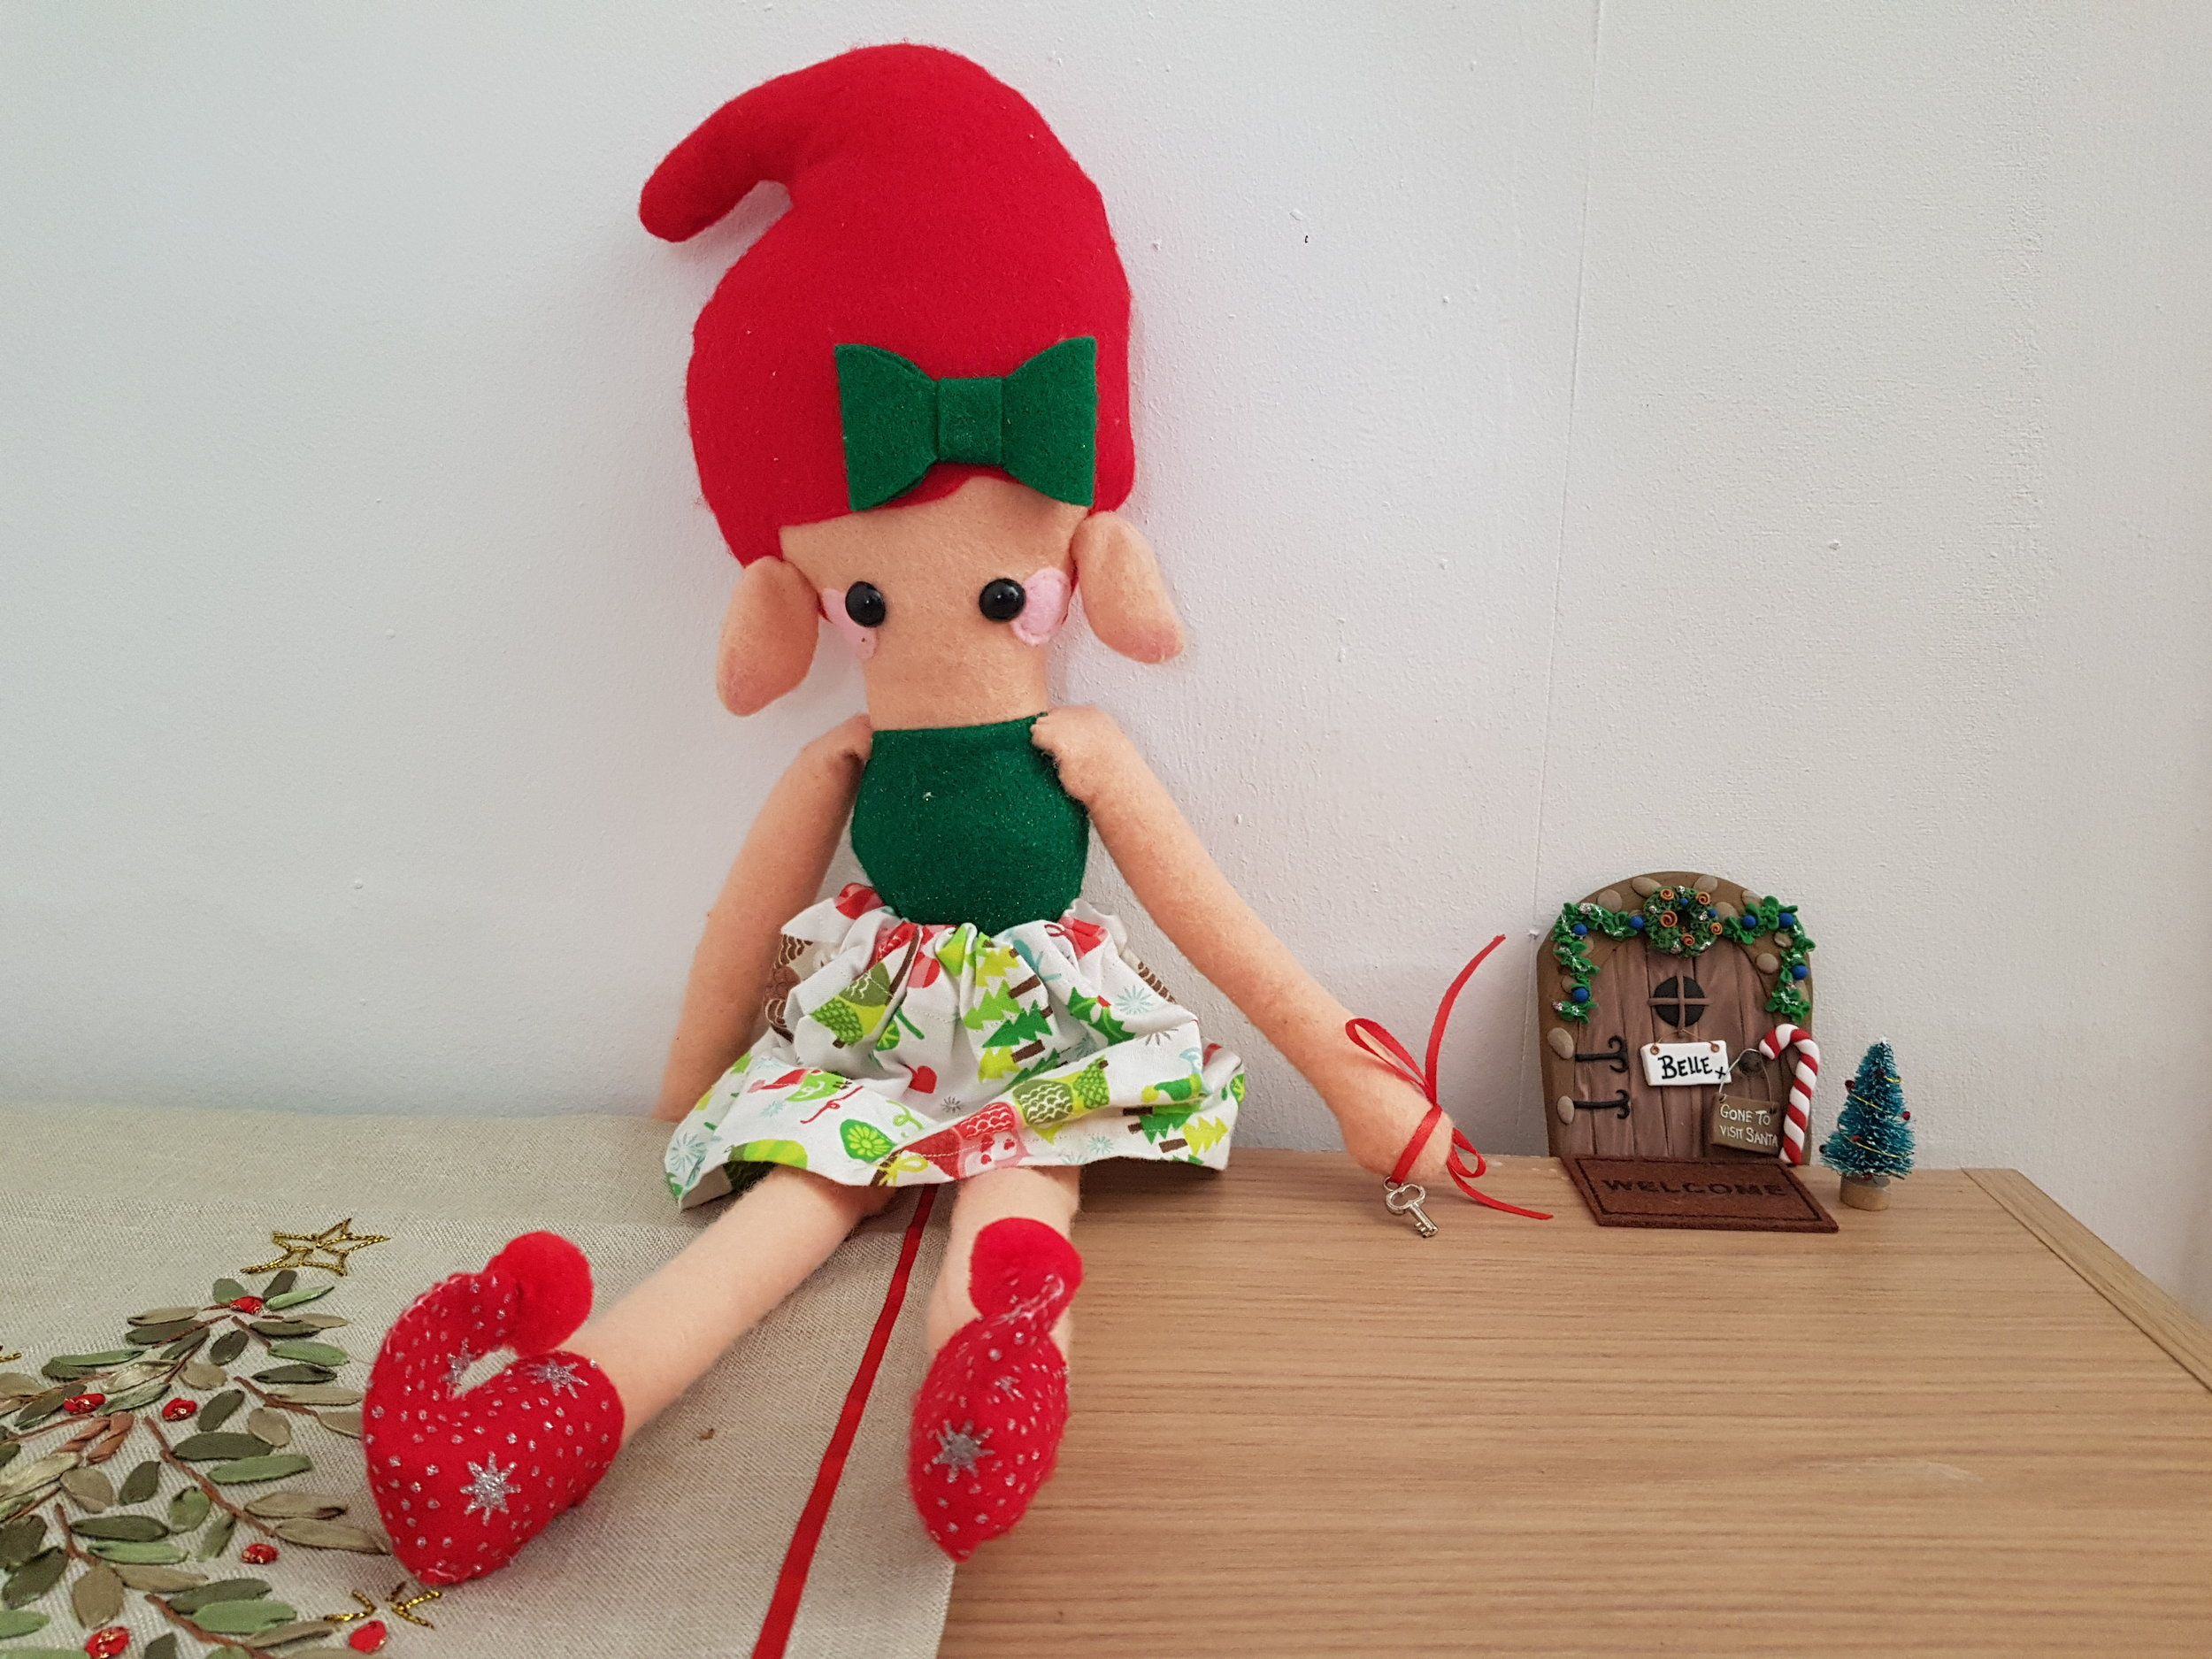 Counting down to Christmas with elf on a shelf